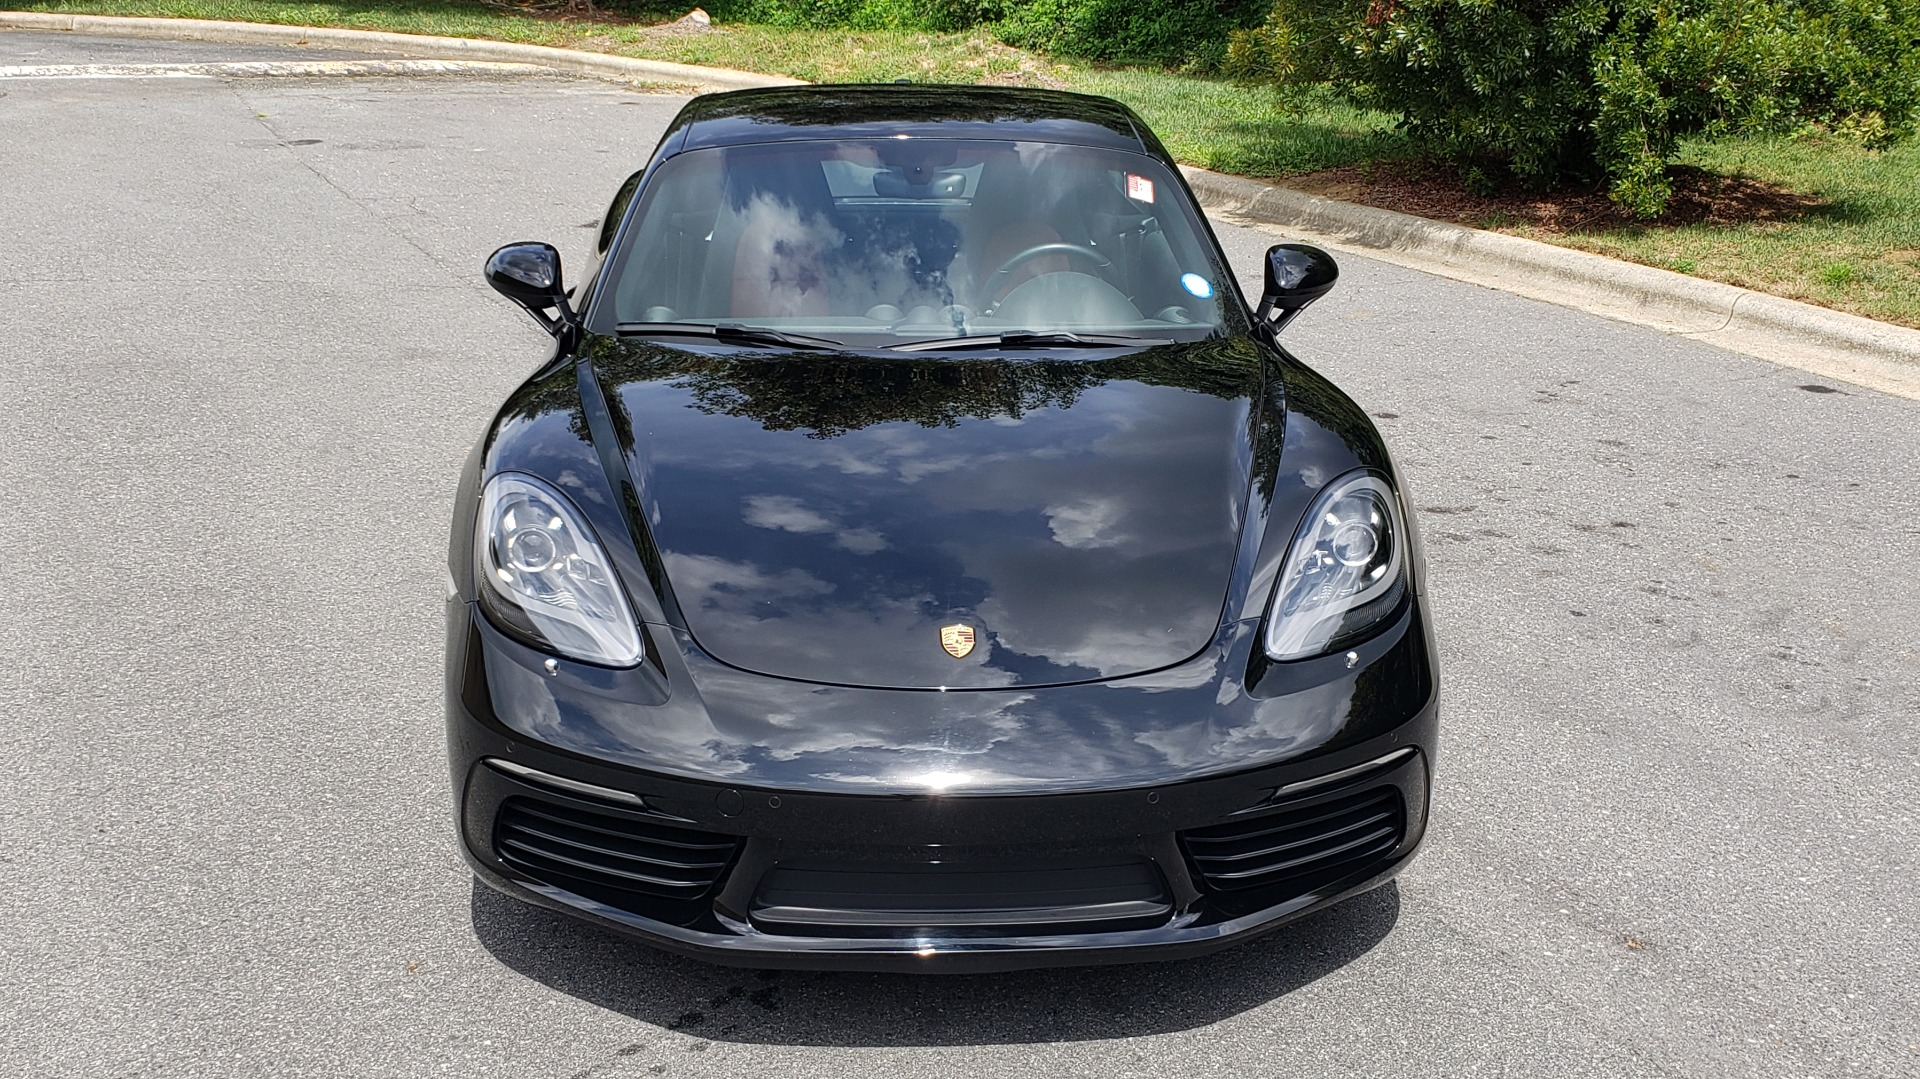 Used 2018 Porsche 718 CAYMAN S / PREM PKG PLUS / PDK / NAV / BOSE / CHRONO / SPORT EXHAUST for sale Sold at Formula Imports in Charlotte NC 28227 16